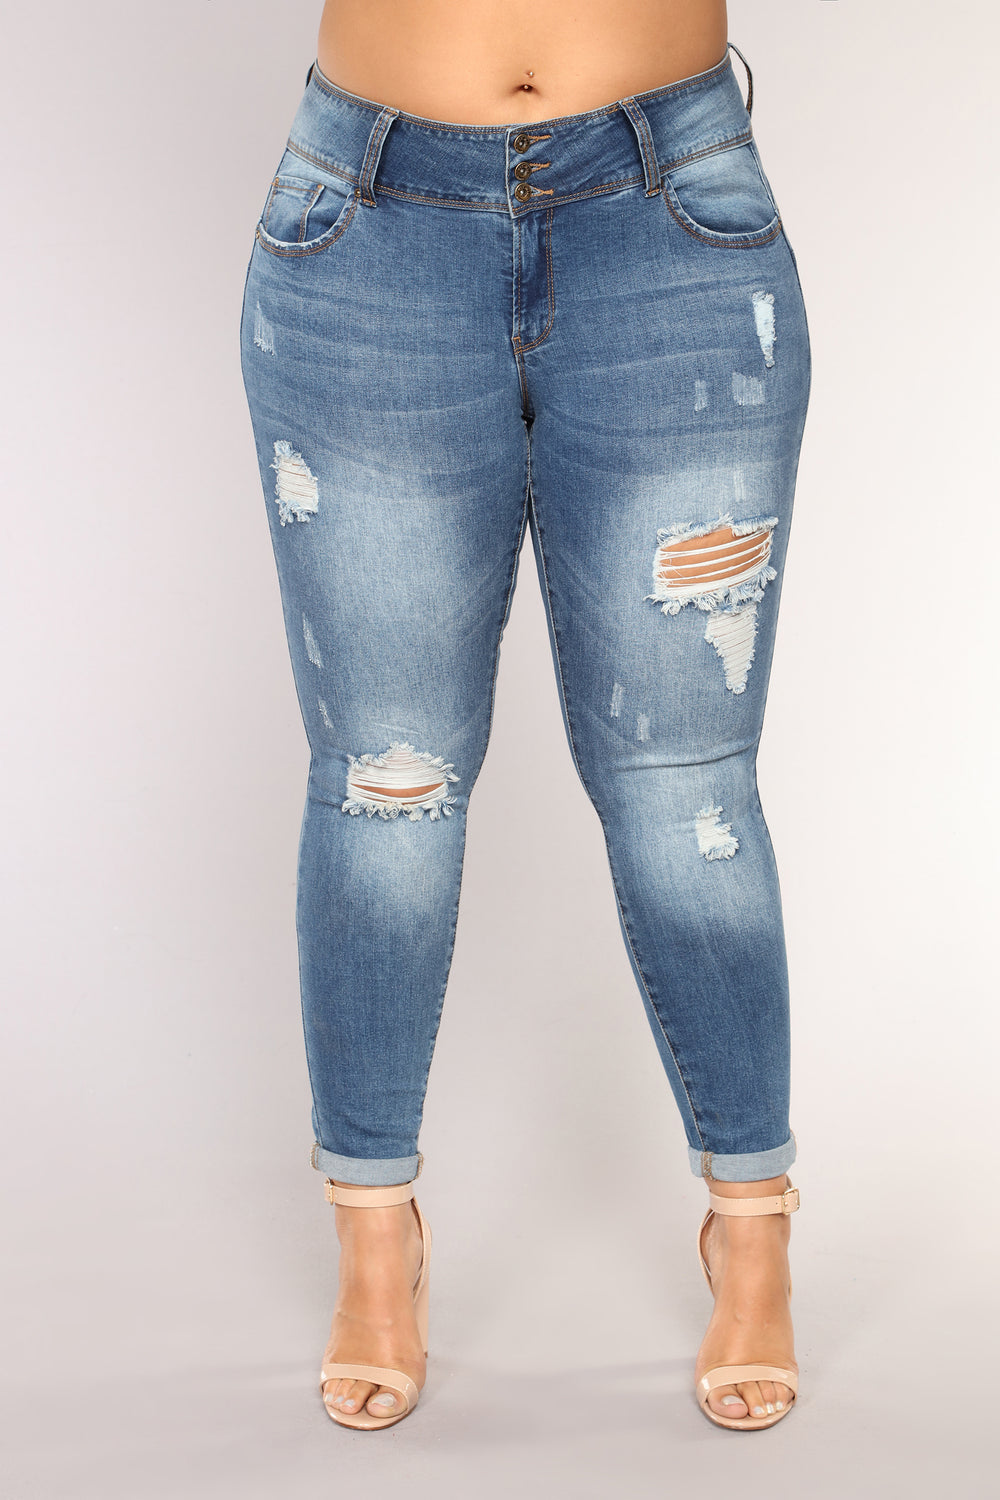 Turnin' More Heads Mid Rise Jeans - Medium Blue Wash